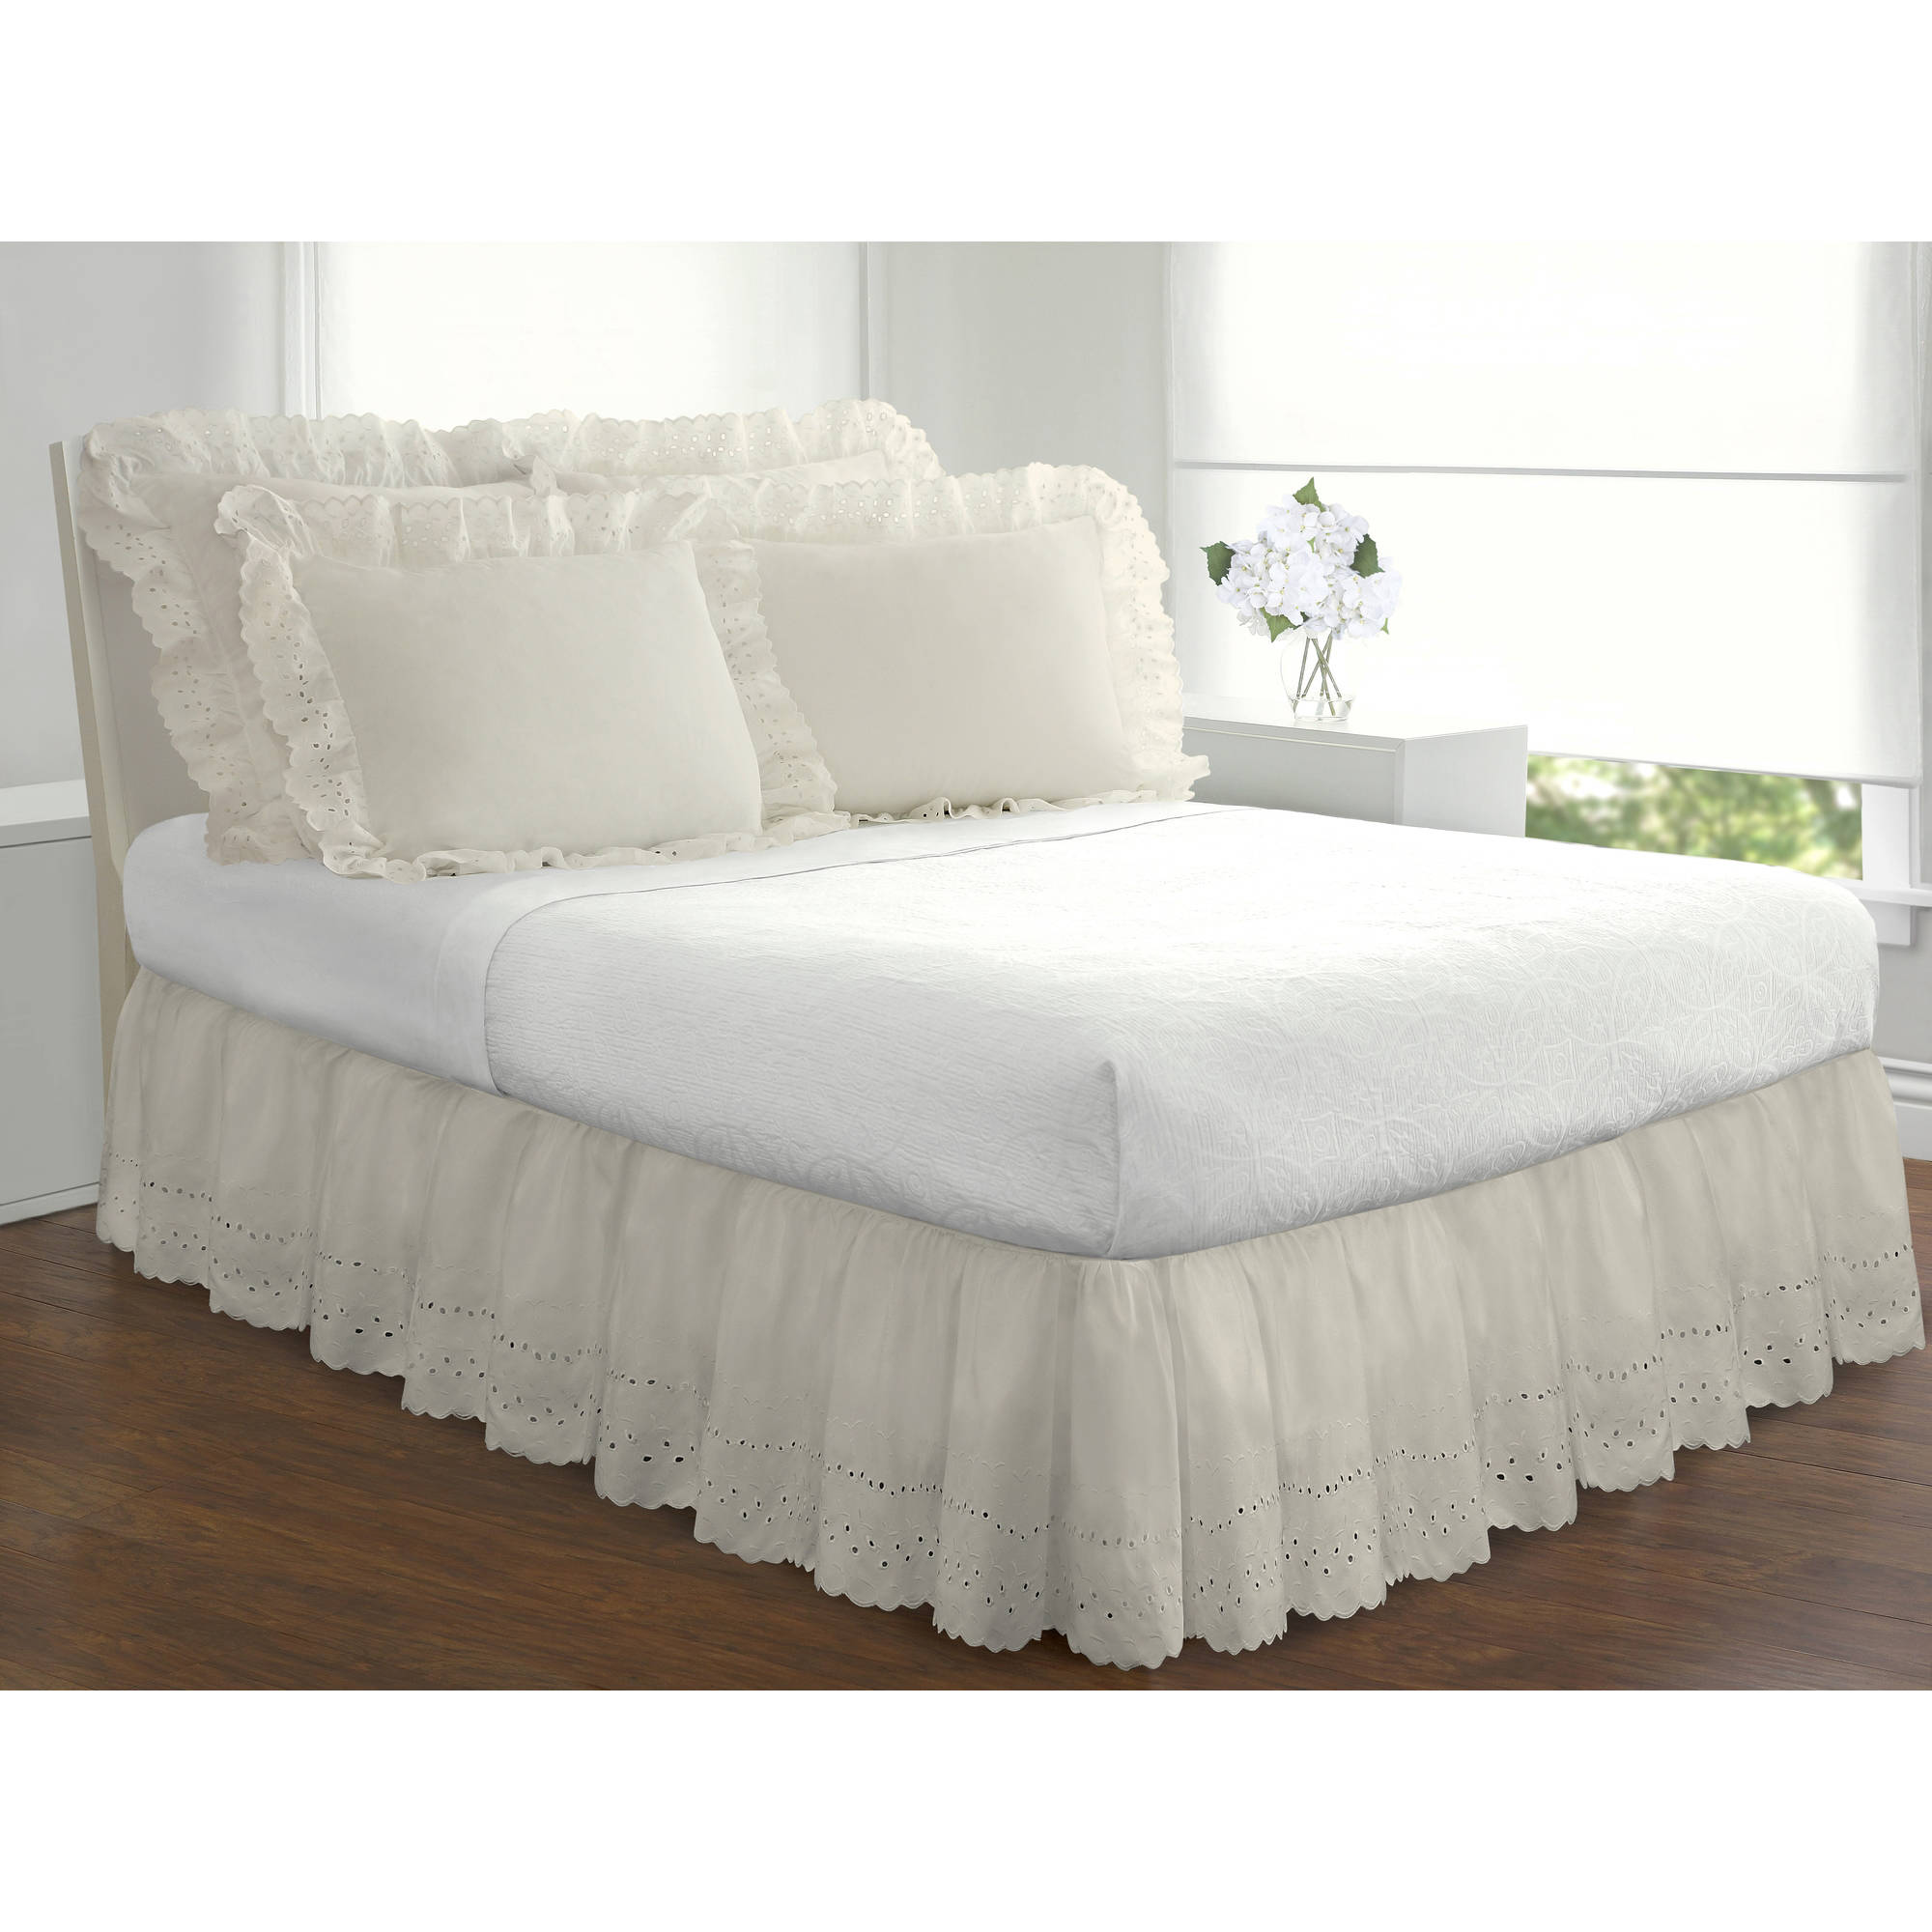 Fresh Ideas Ruffles Eyelet Collection, bed skirts and shams sold separately